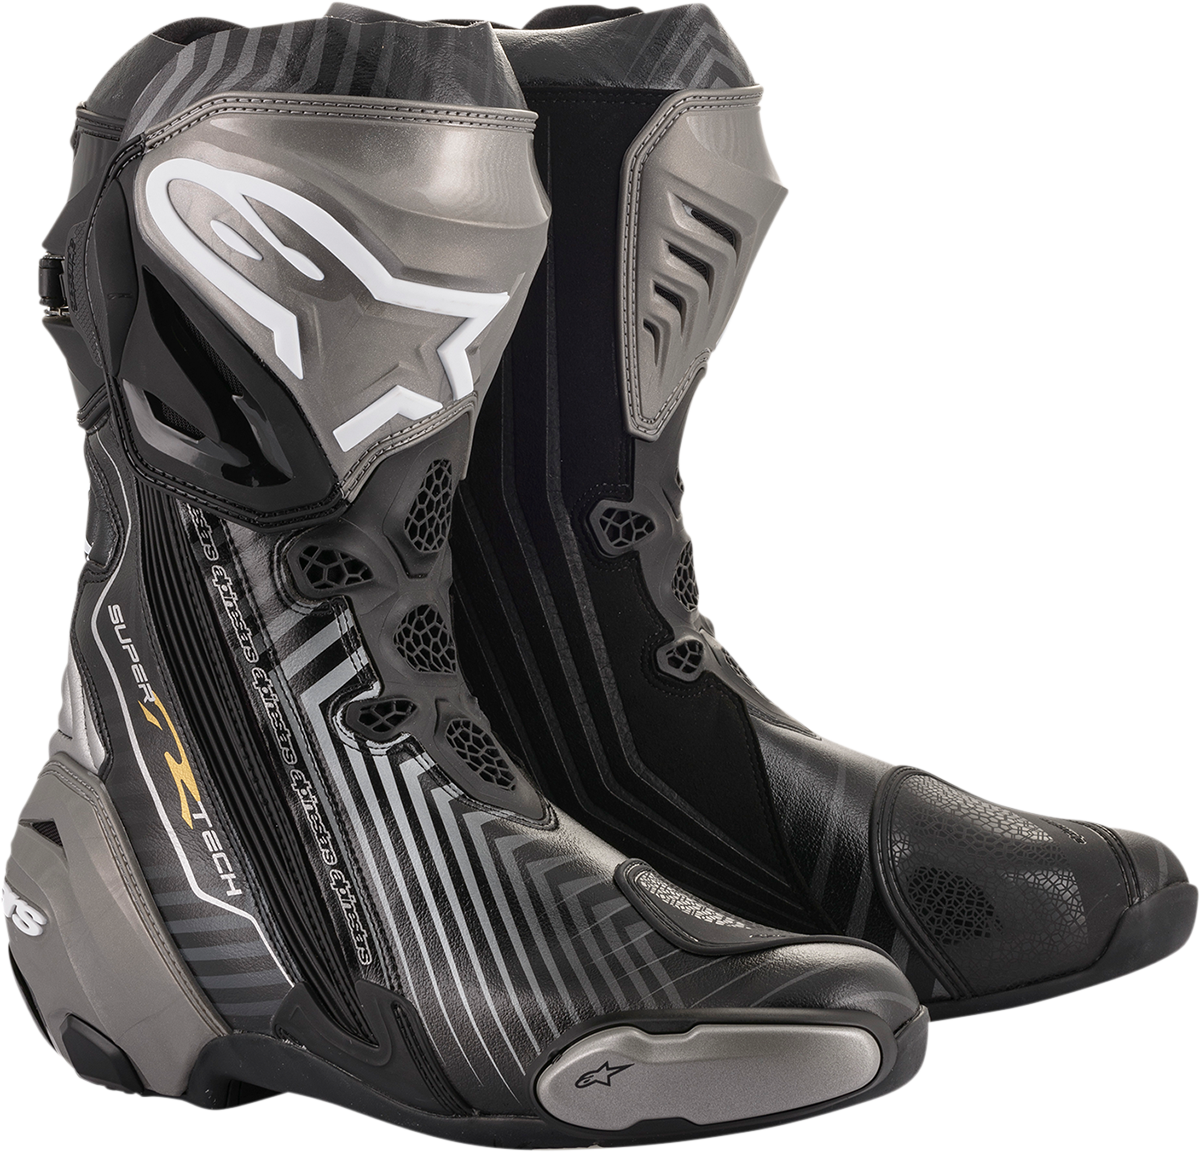 Alpinestars Supertech R Mens Black Gray Motorcycle Riding Street Racing Boots